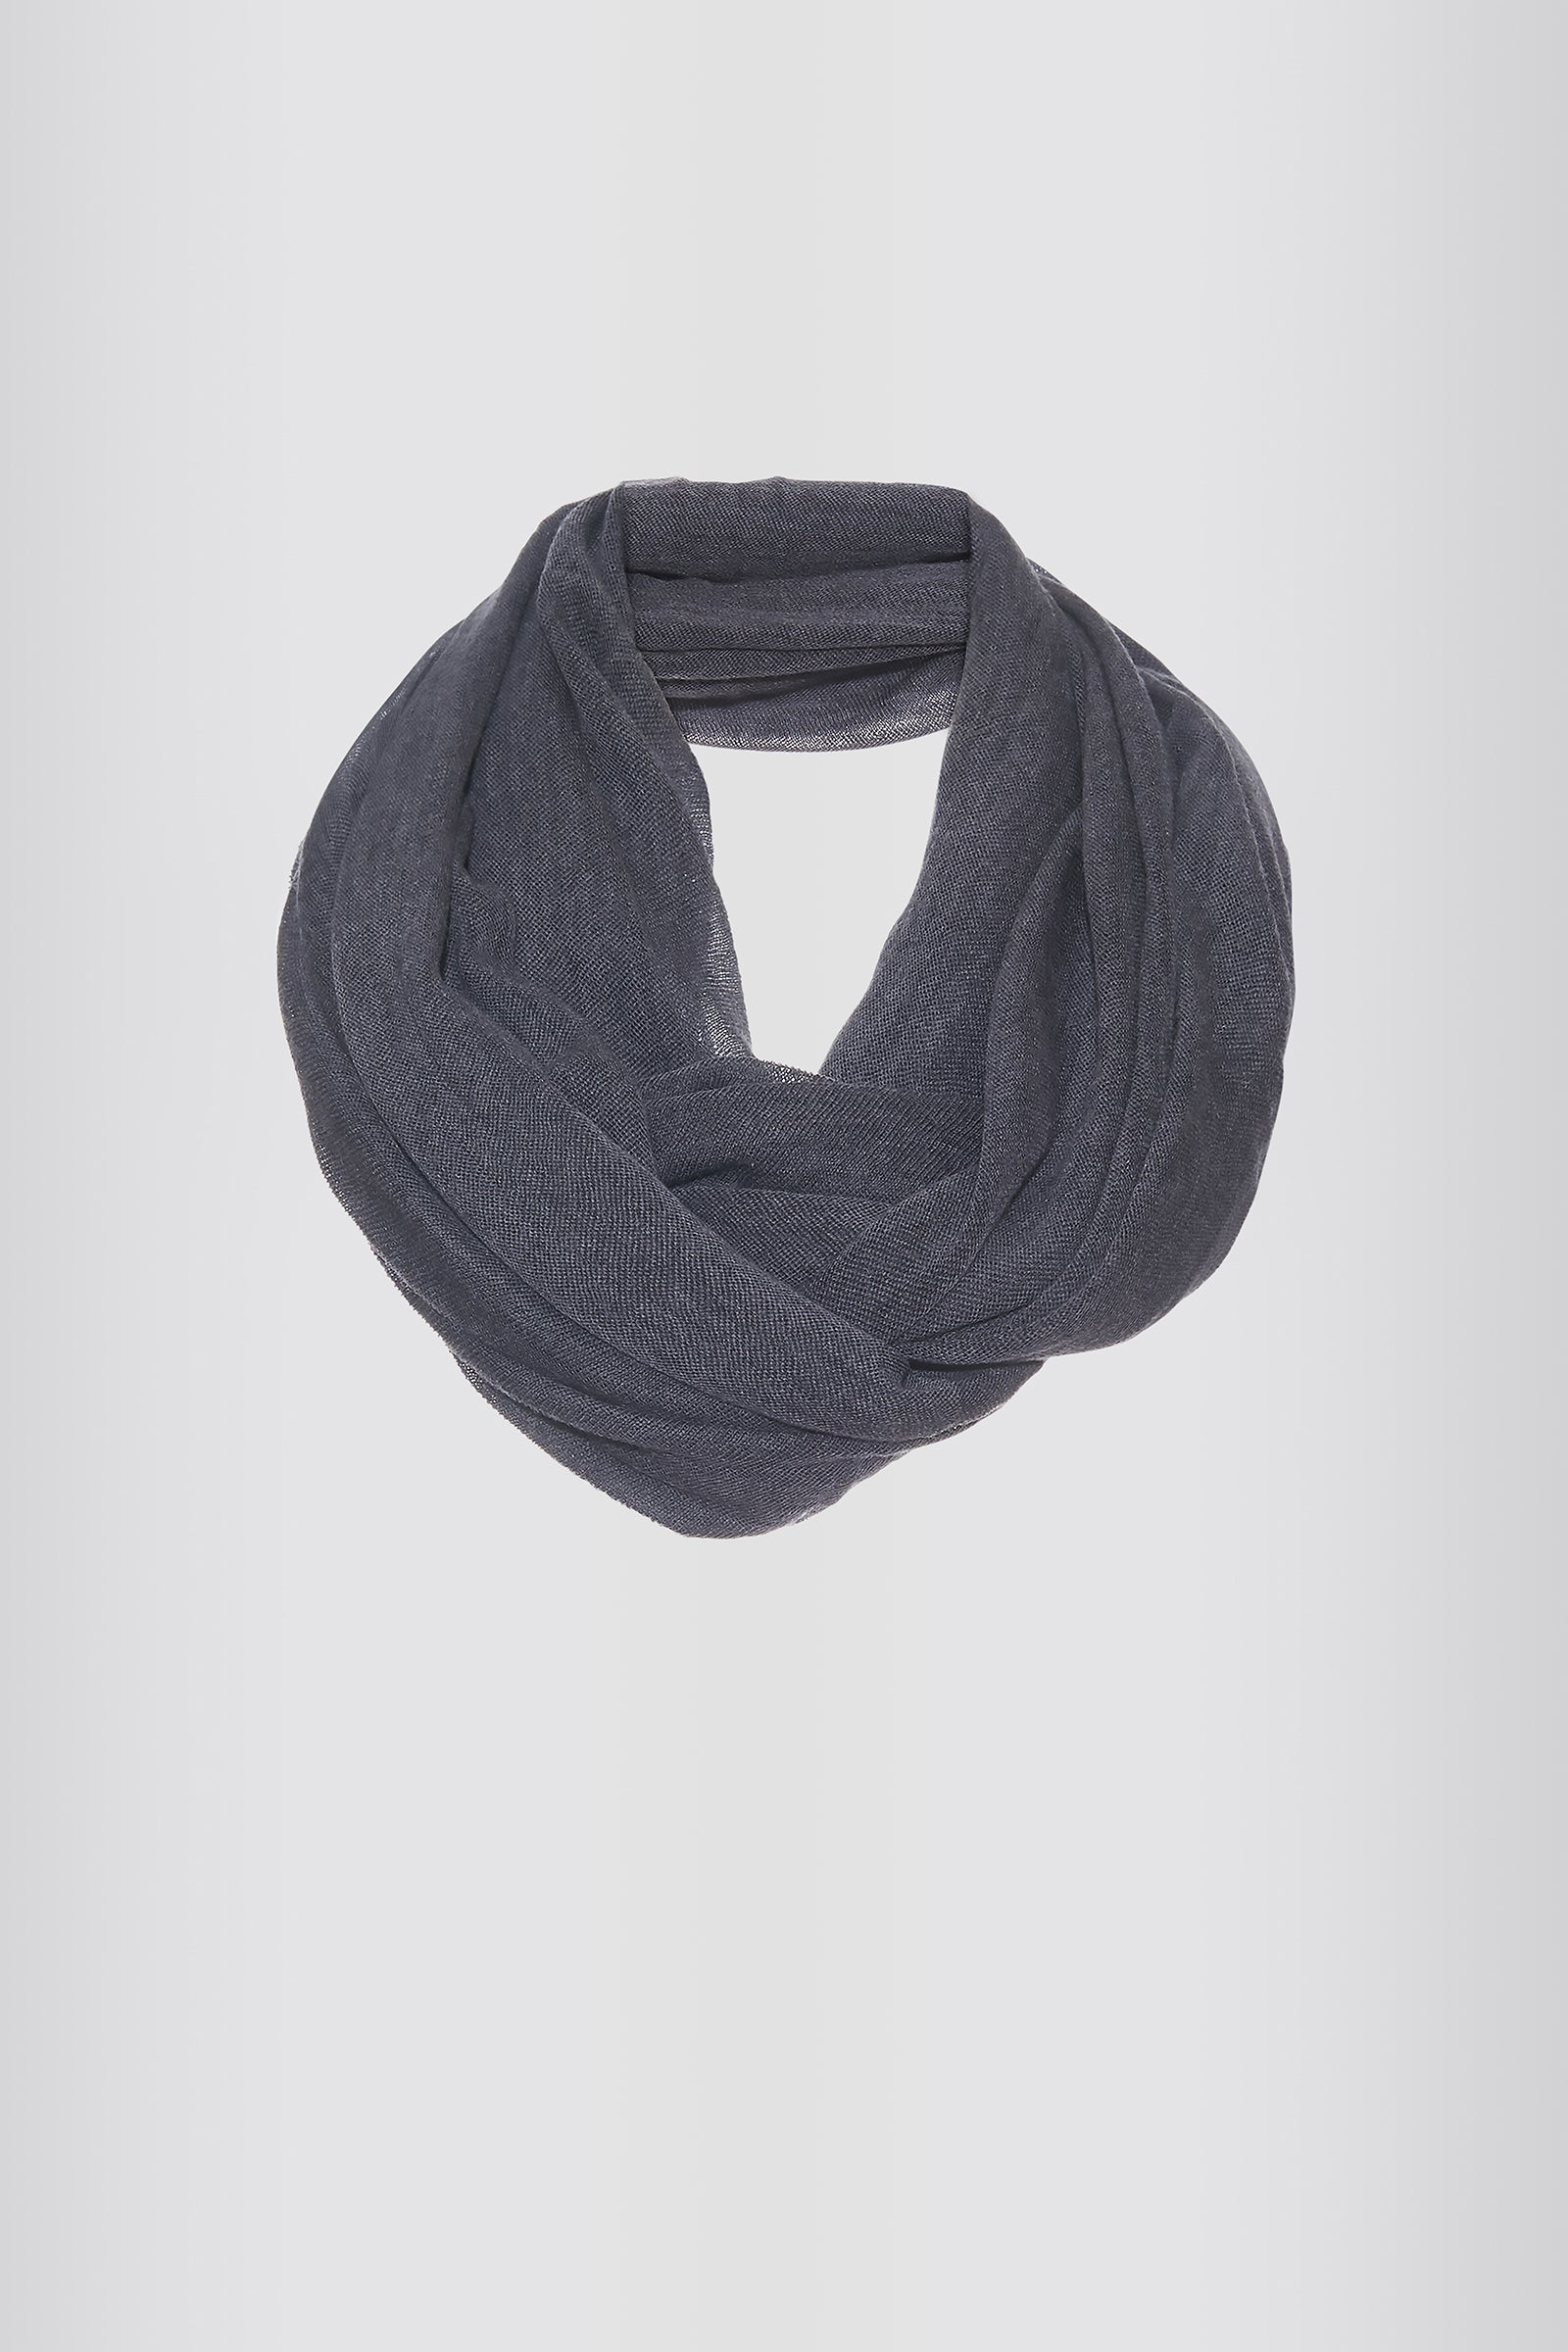 Kal Rieman Infinity Circle Scarf in Charcoal on Model Front Full View Tied